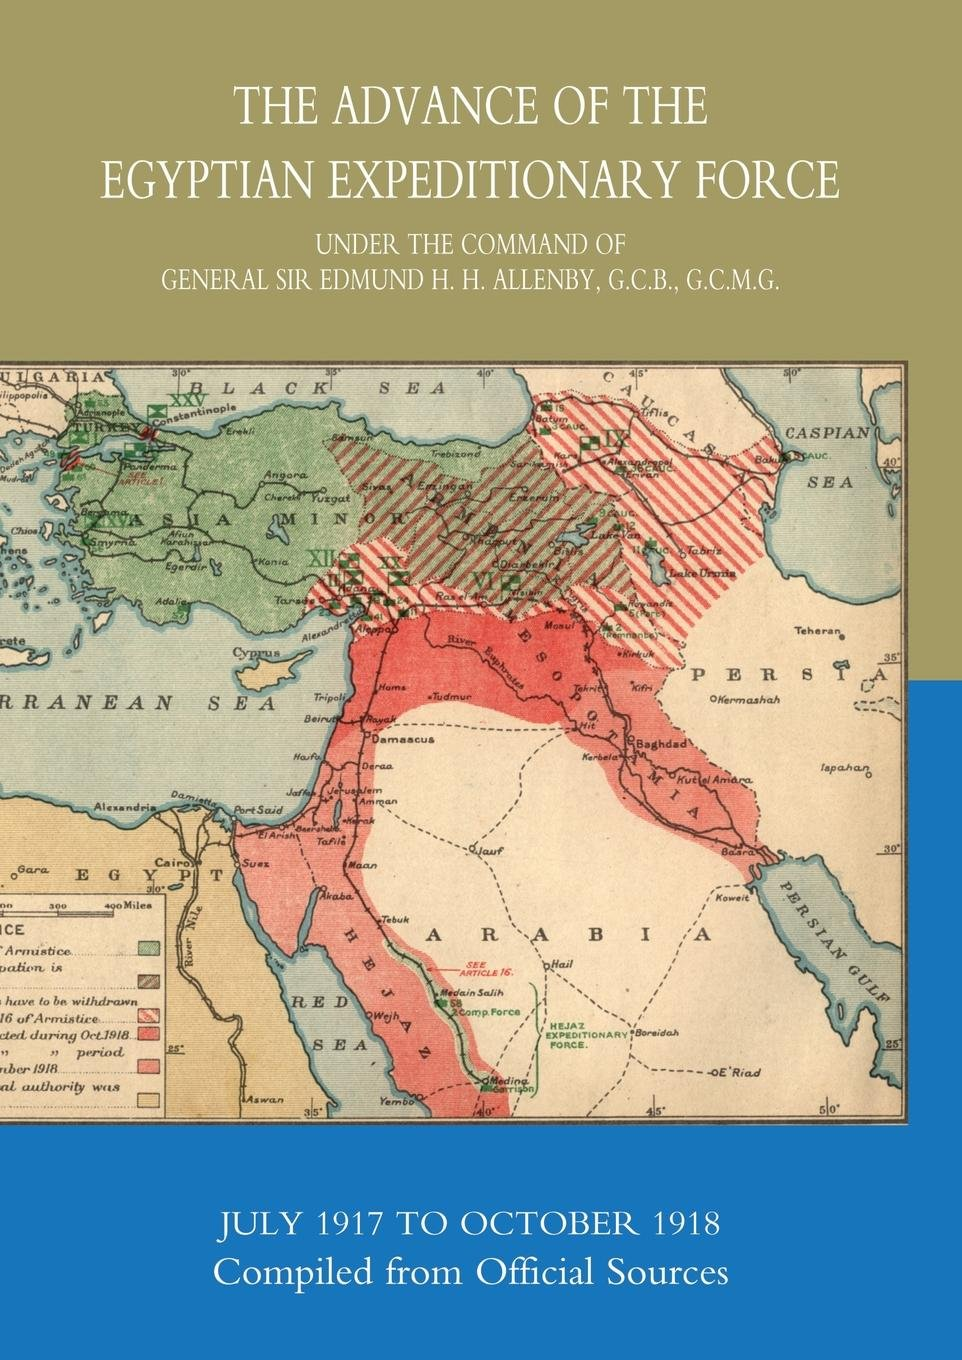 Download The Advance Of The Egyptian Expeditionary Force 1917-1918  Compiled From Official Sources: The Advance Of The Egyptian Expeditionary Force 1917-1918  Compiled From Official Sources pdf epub